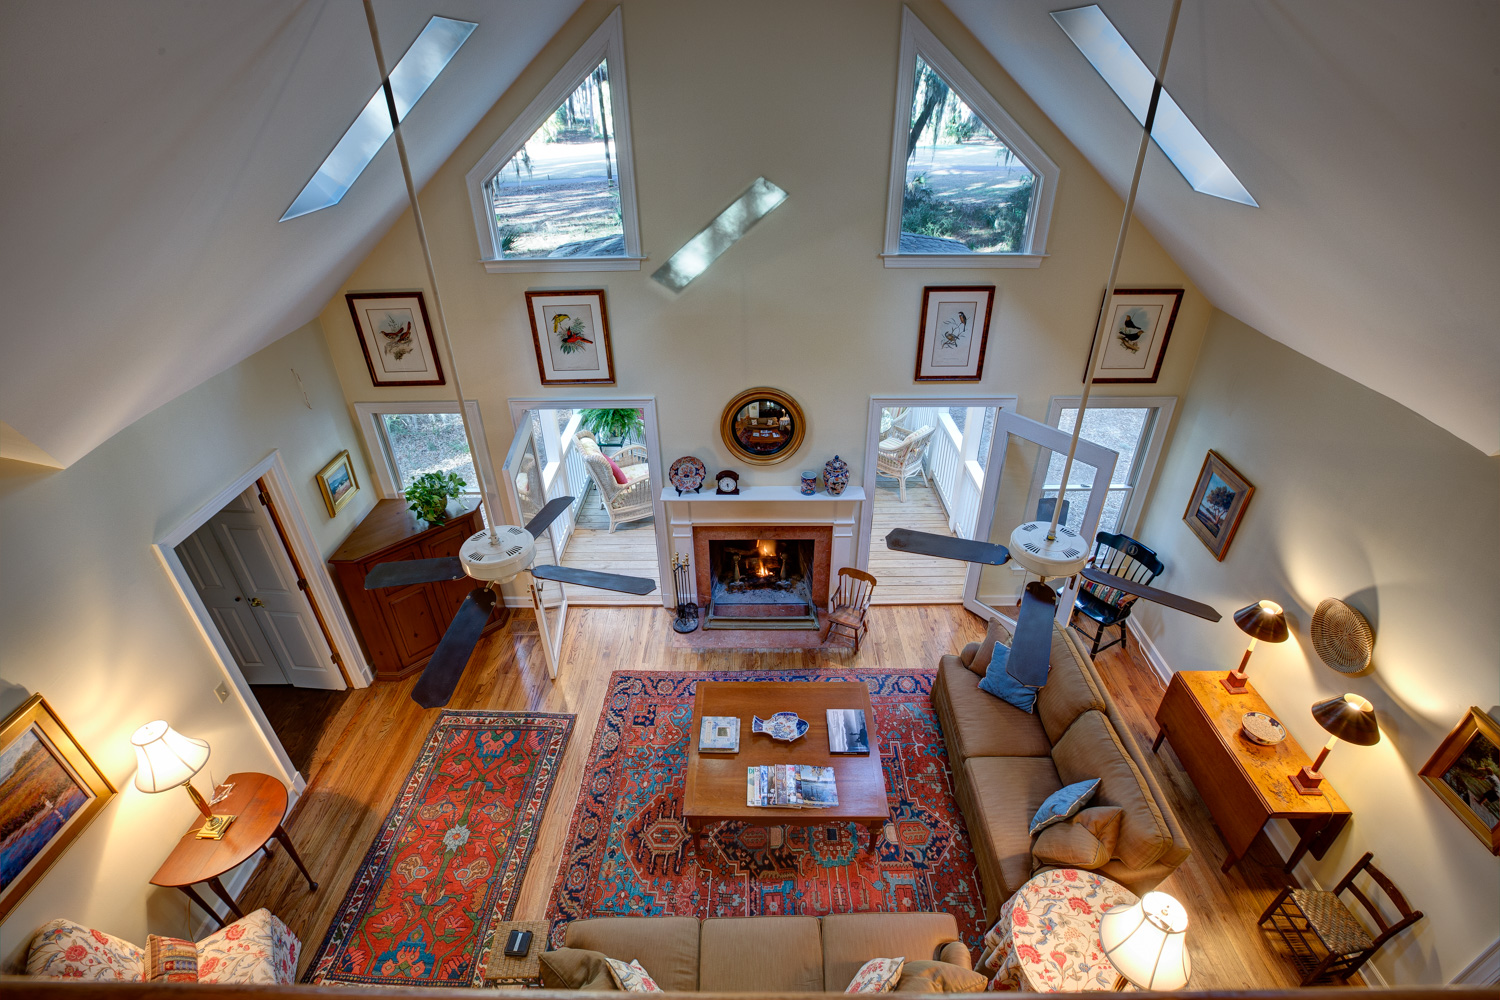 020 living-room-from-above-PS2.jpg